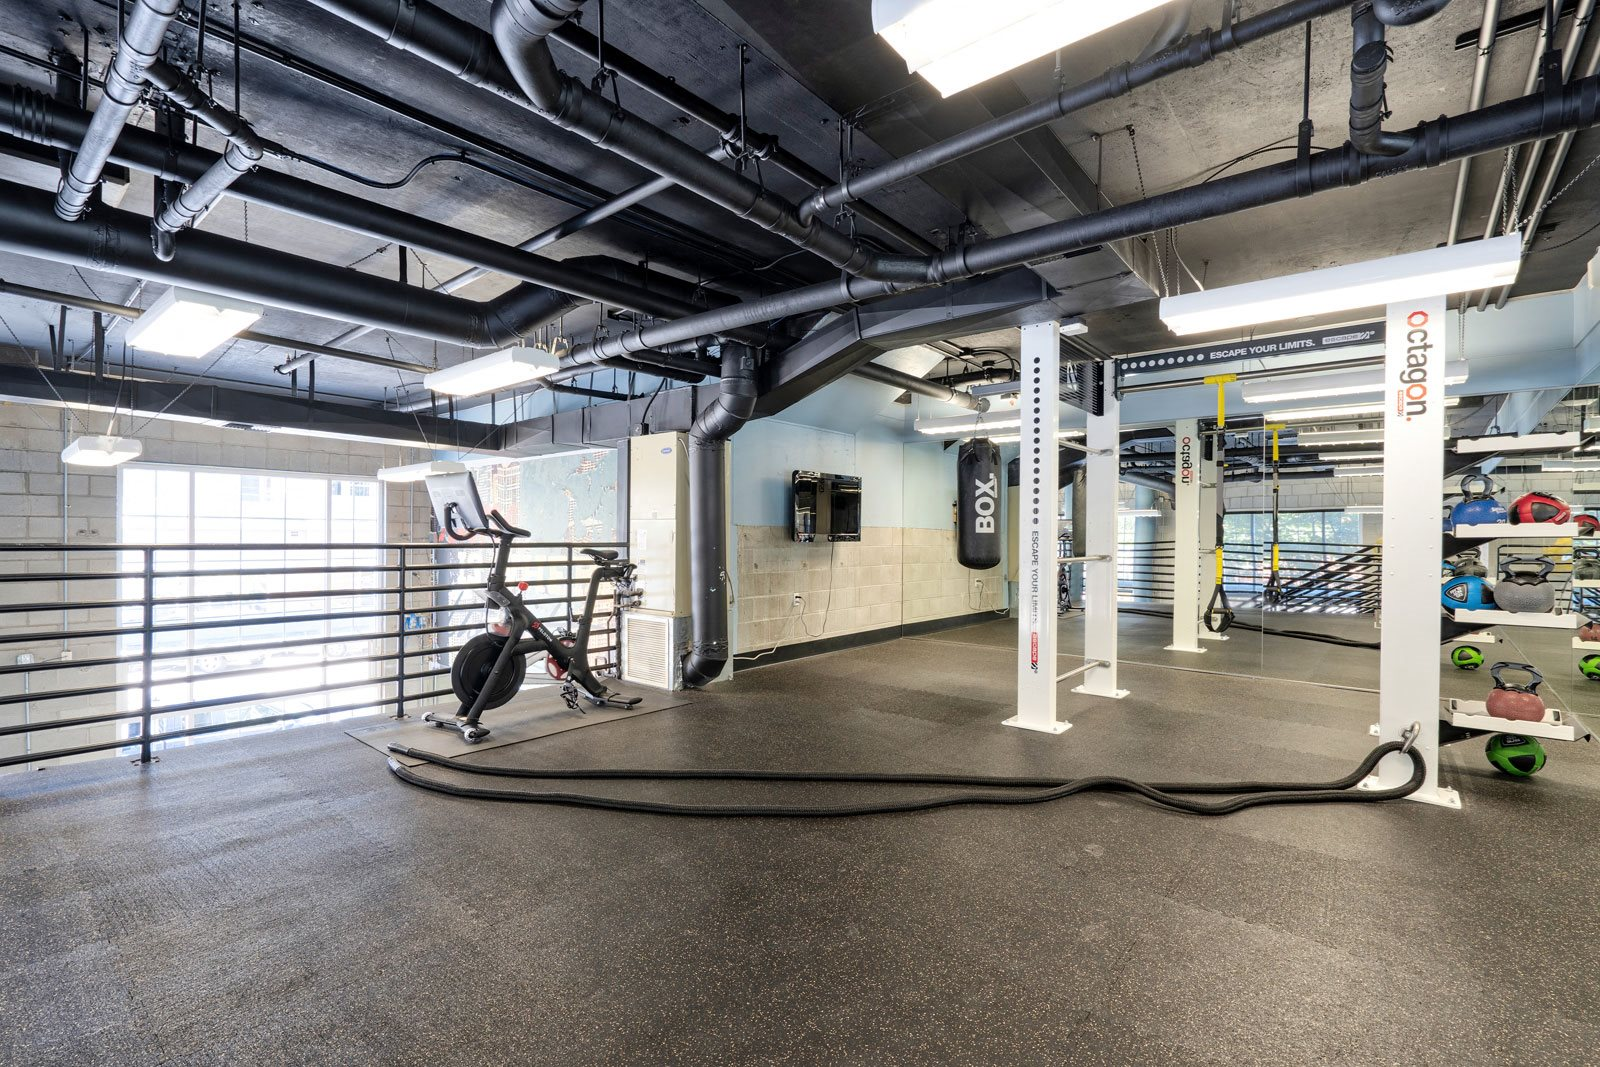 Peloton Bike and Training Space at Allegro at Jack London Square, Oakland, 94607